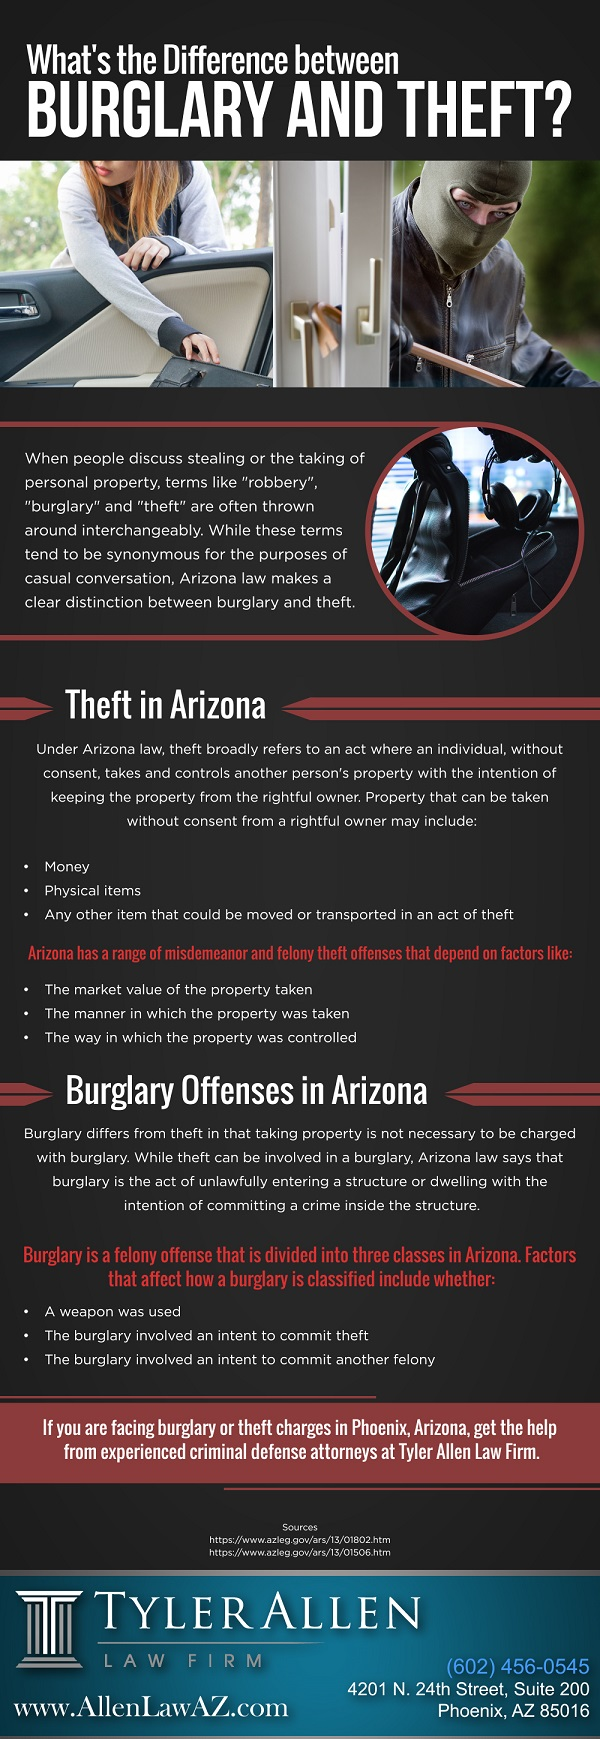 What's the Difference between Burglary and Theft